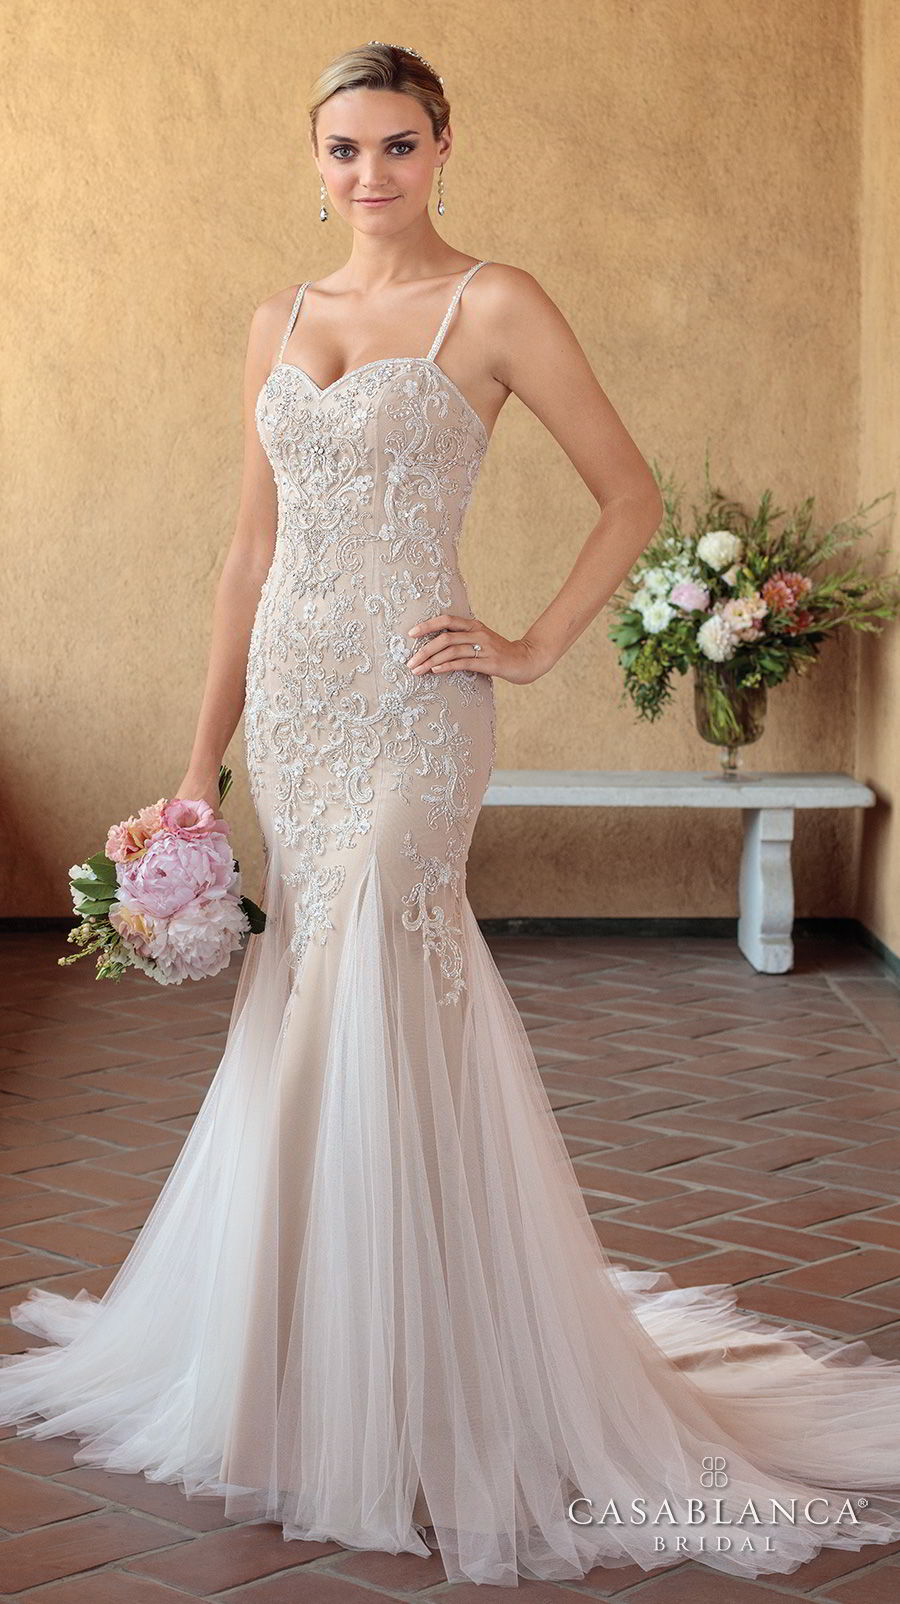 casablanca spring 2018 thin strap sweetheart neckline heavily embellished bodice elegant mermaid wedding dress short train (pixie) mv